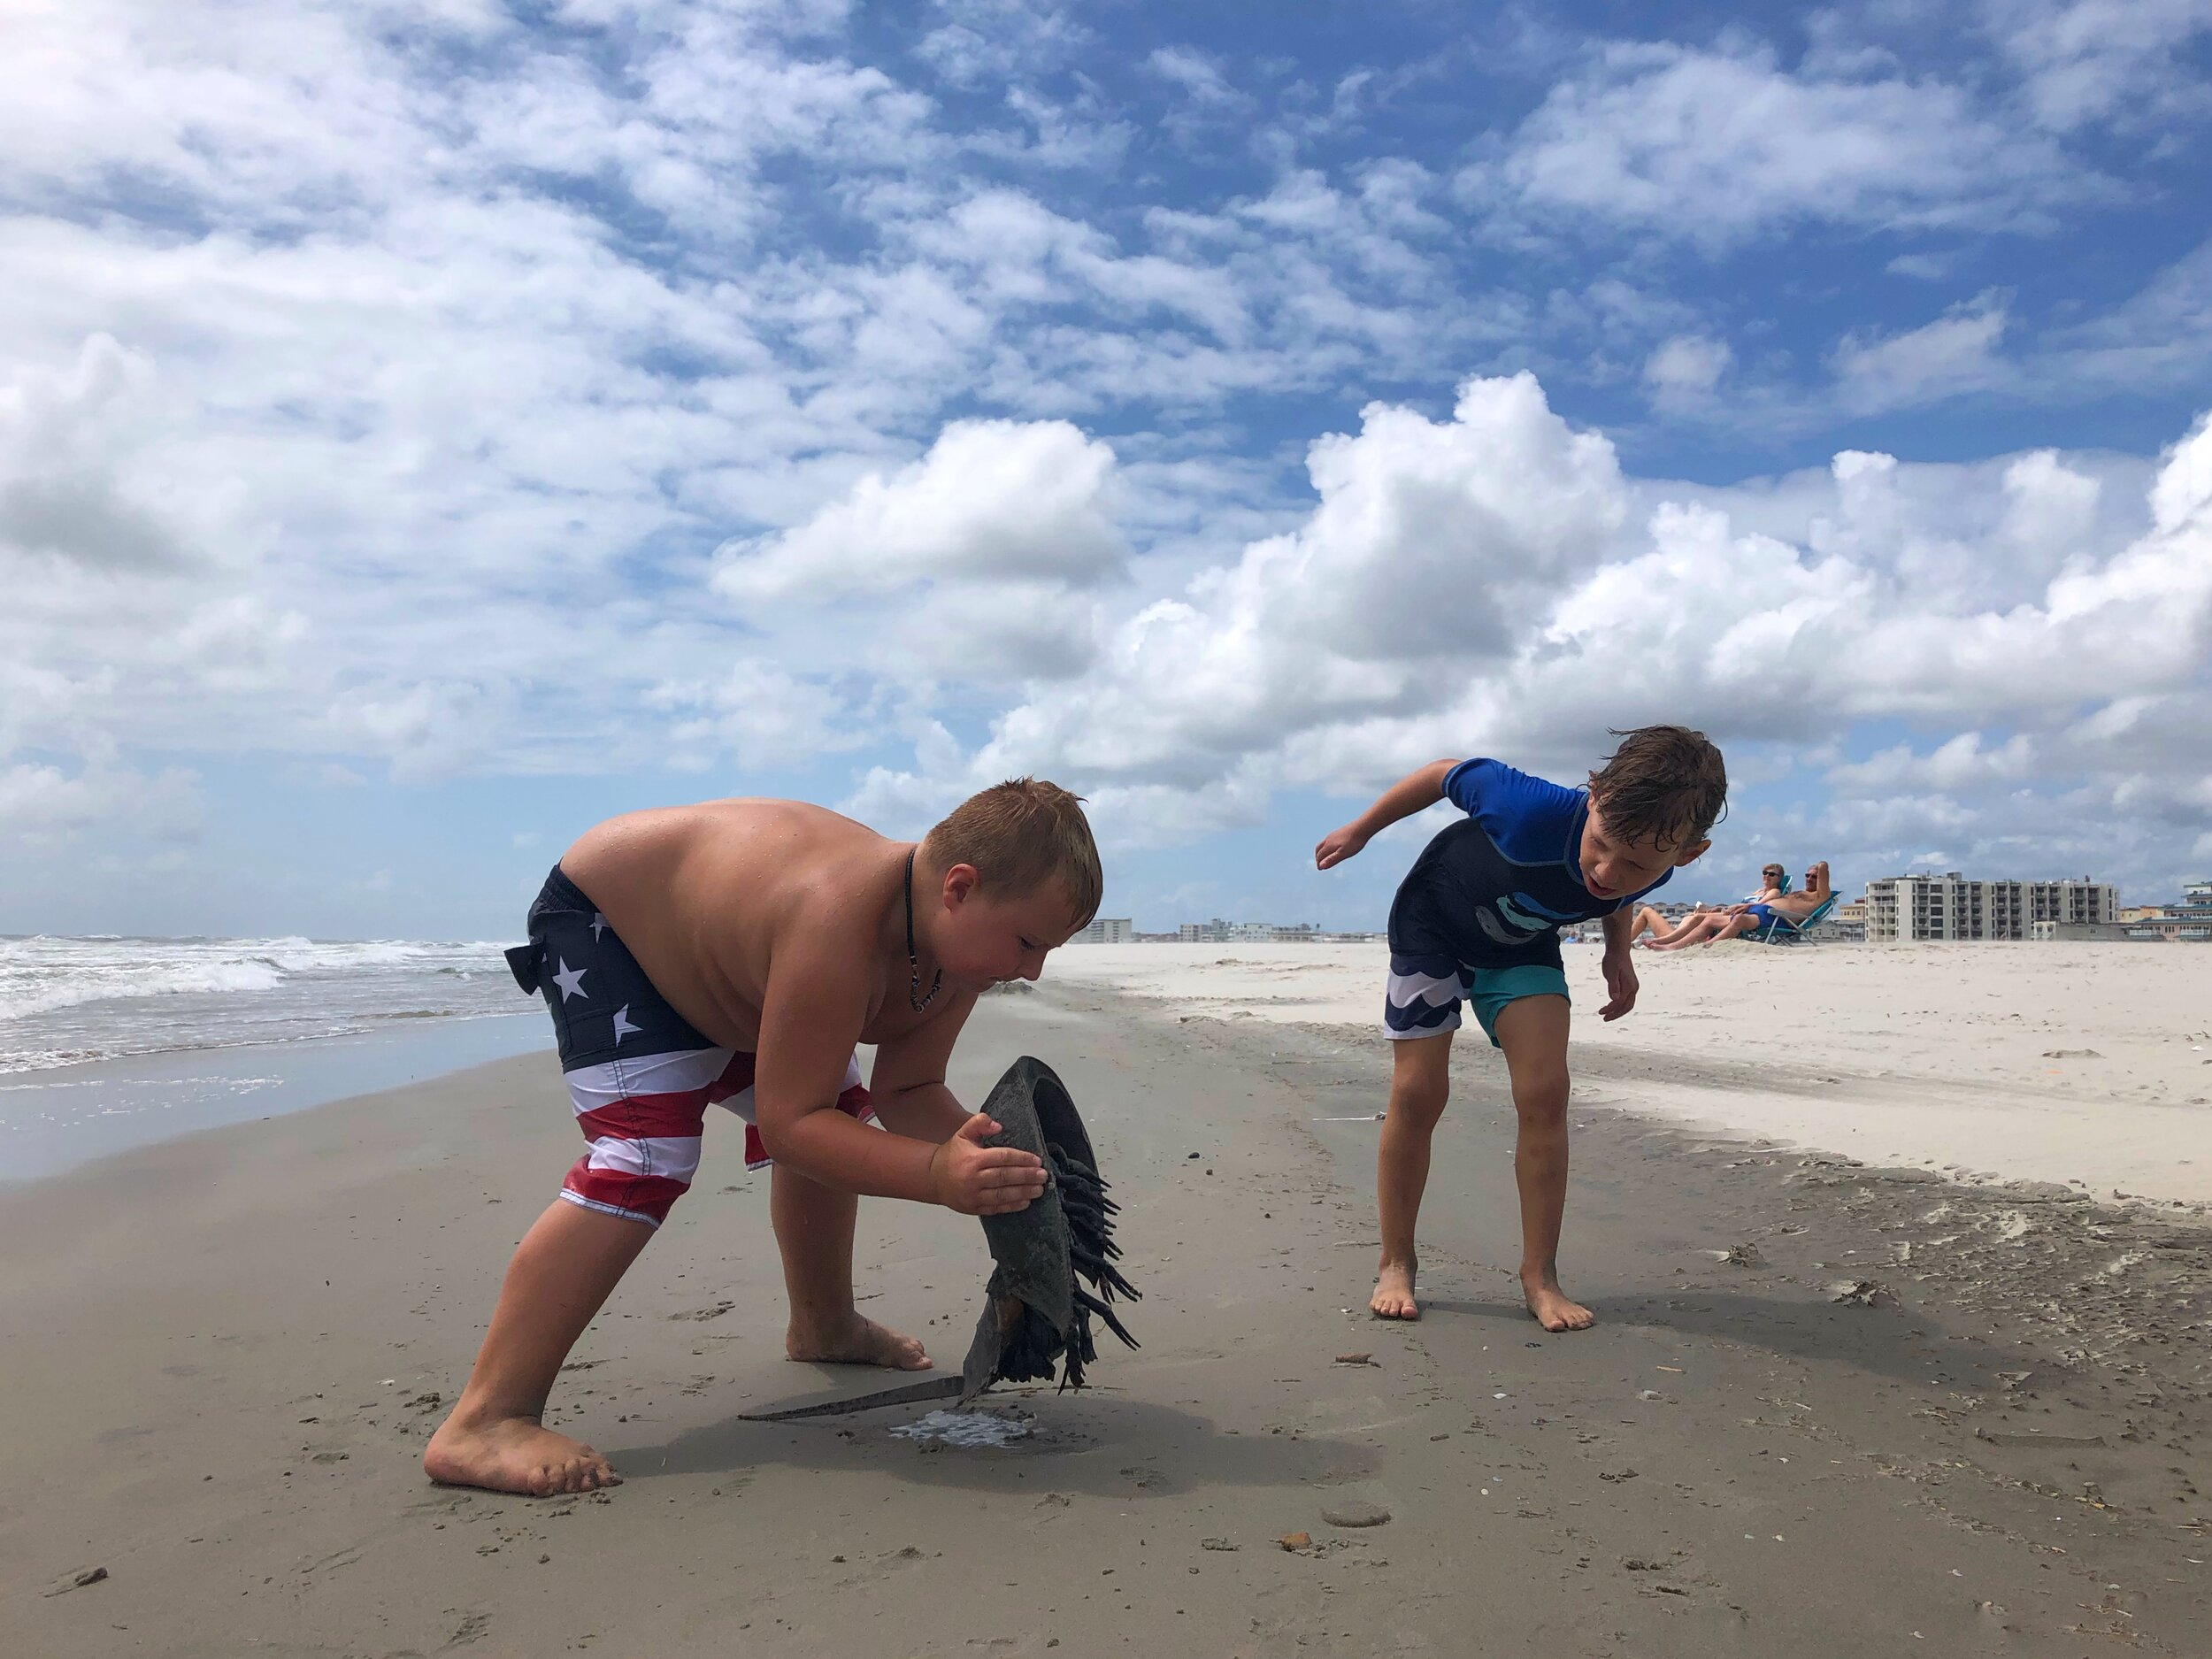 Boy picks up dead horseshoe crab on the beach while other boy watches